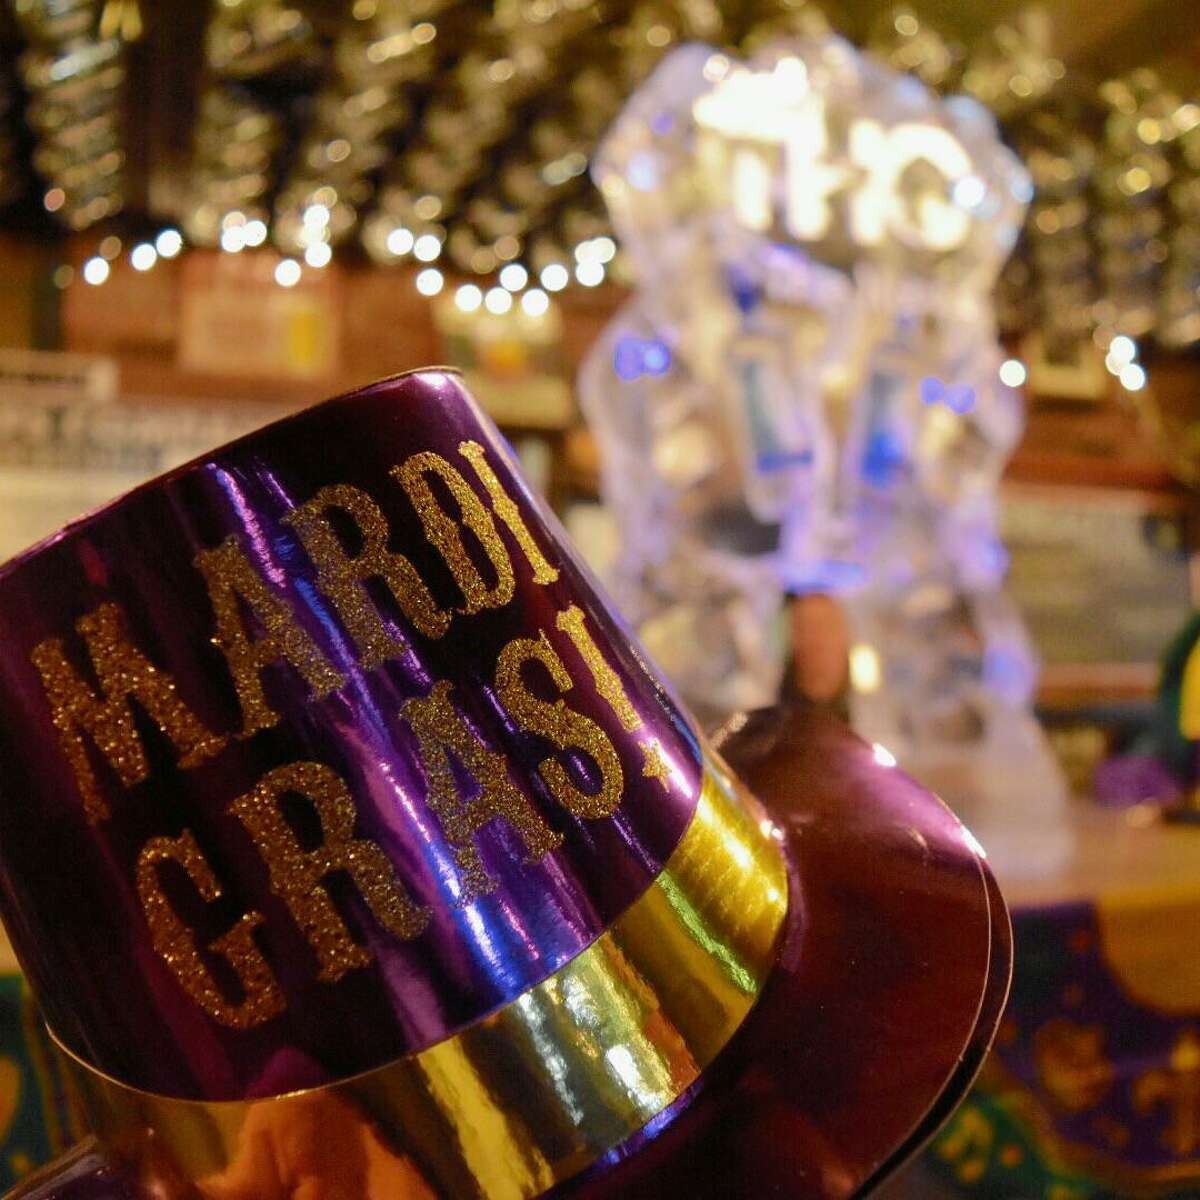 The Hops Co. in Derby has events planned.